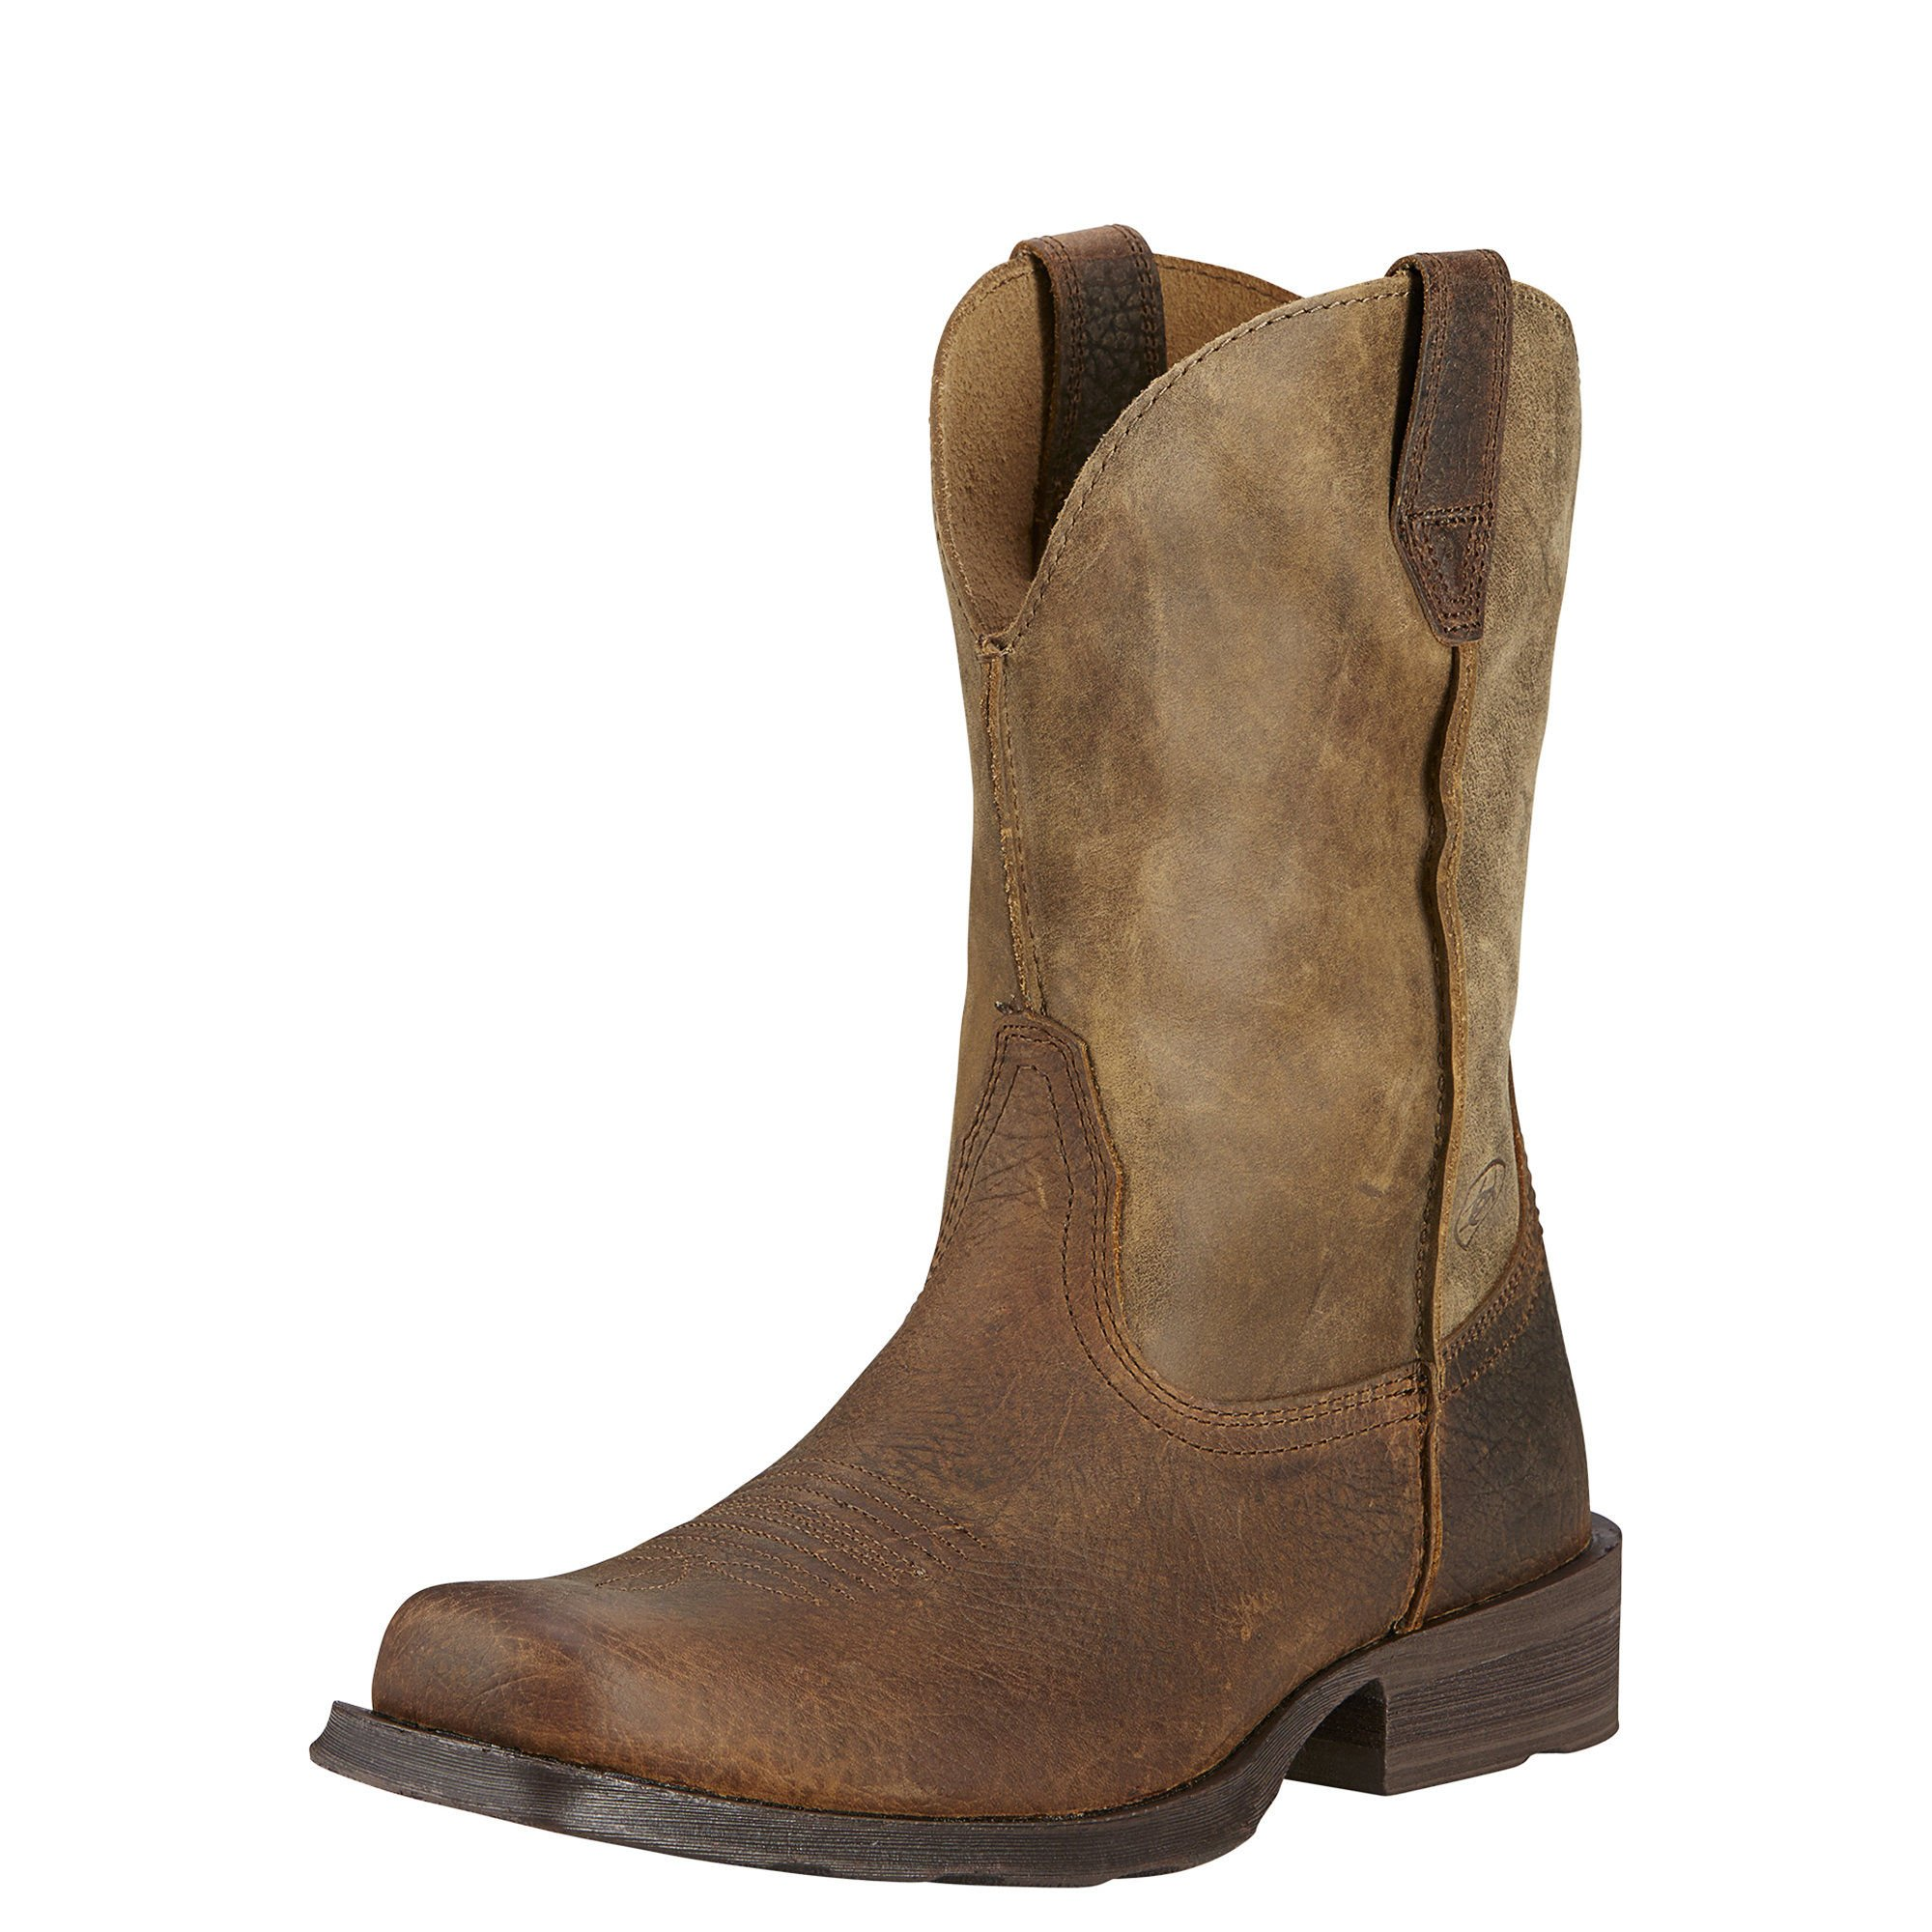 Ariat Men's Rambler Wide Square Toe Western Cowboy Boot, Earth/Brown Bomber, 10.5 M US